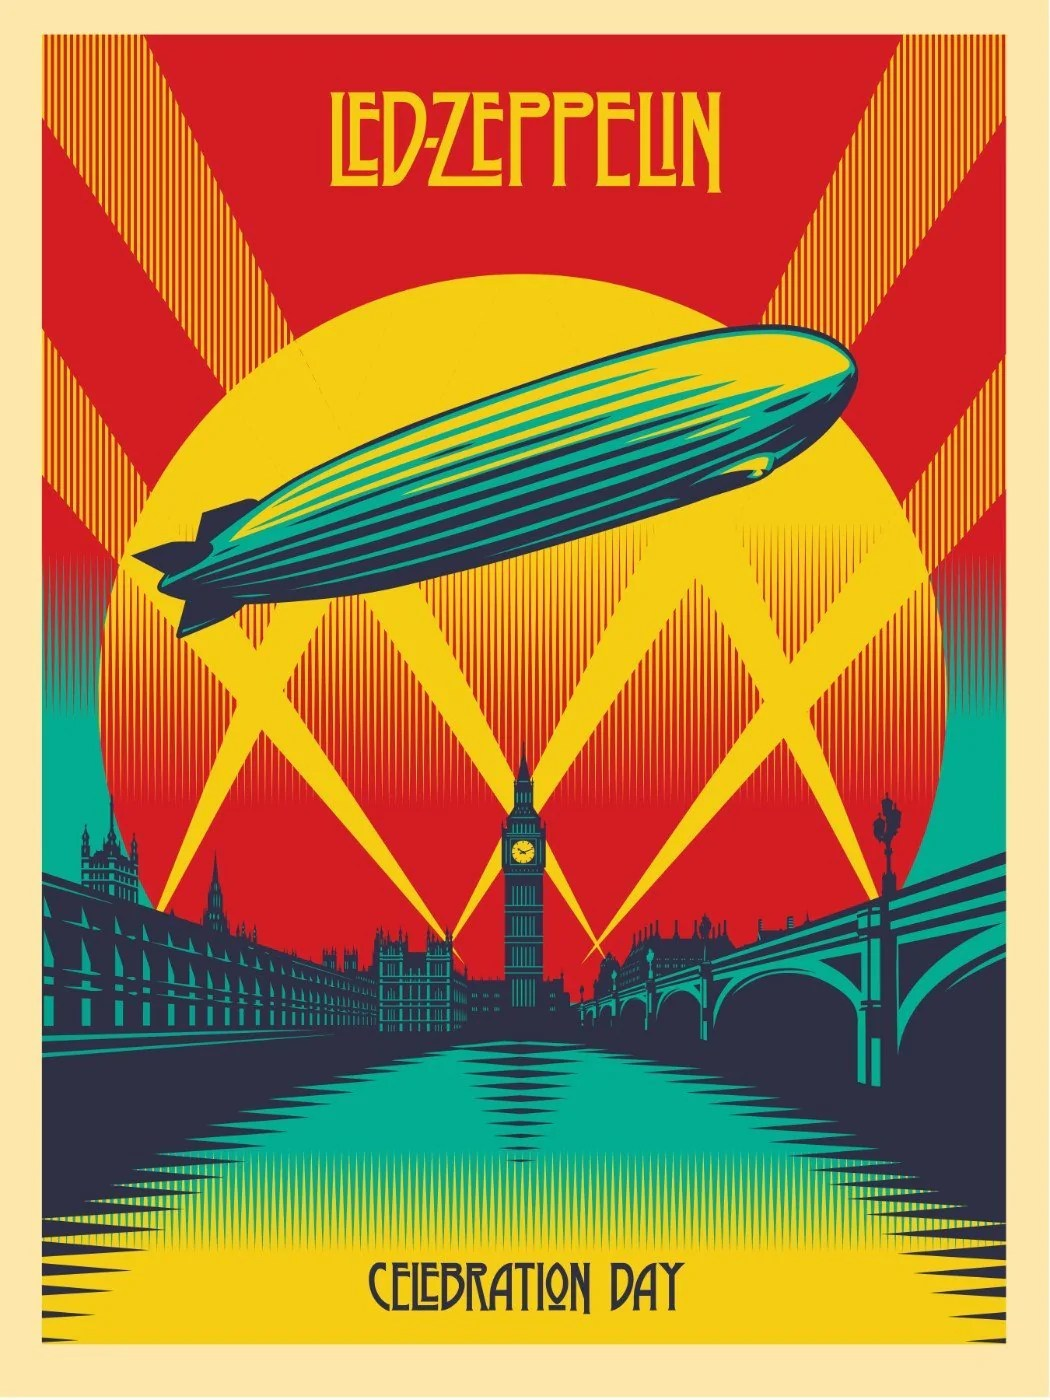 tallenge music collection music poster led zeppelin celebration day poster large art prints